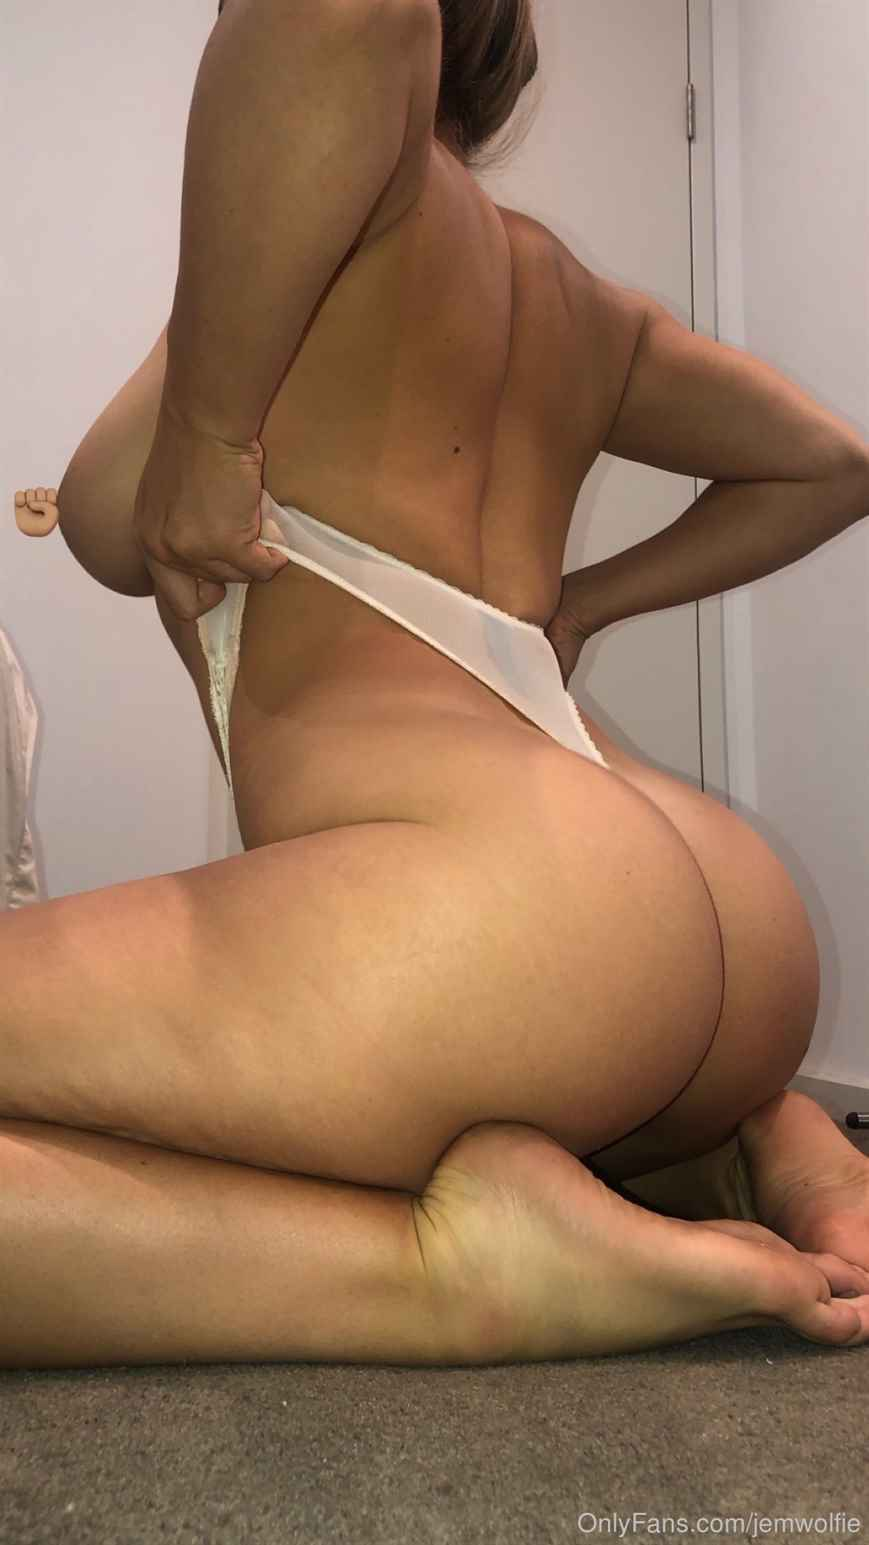 Jem Wolfie Nude Shower Onlyfans Photos Leaked 0063